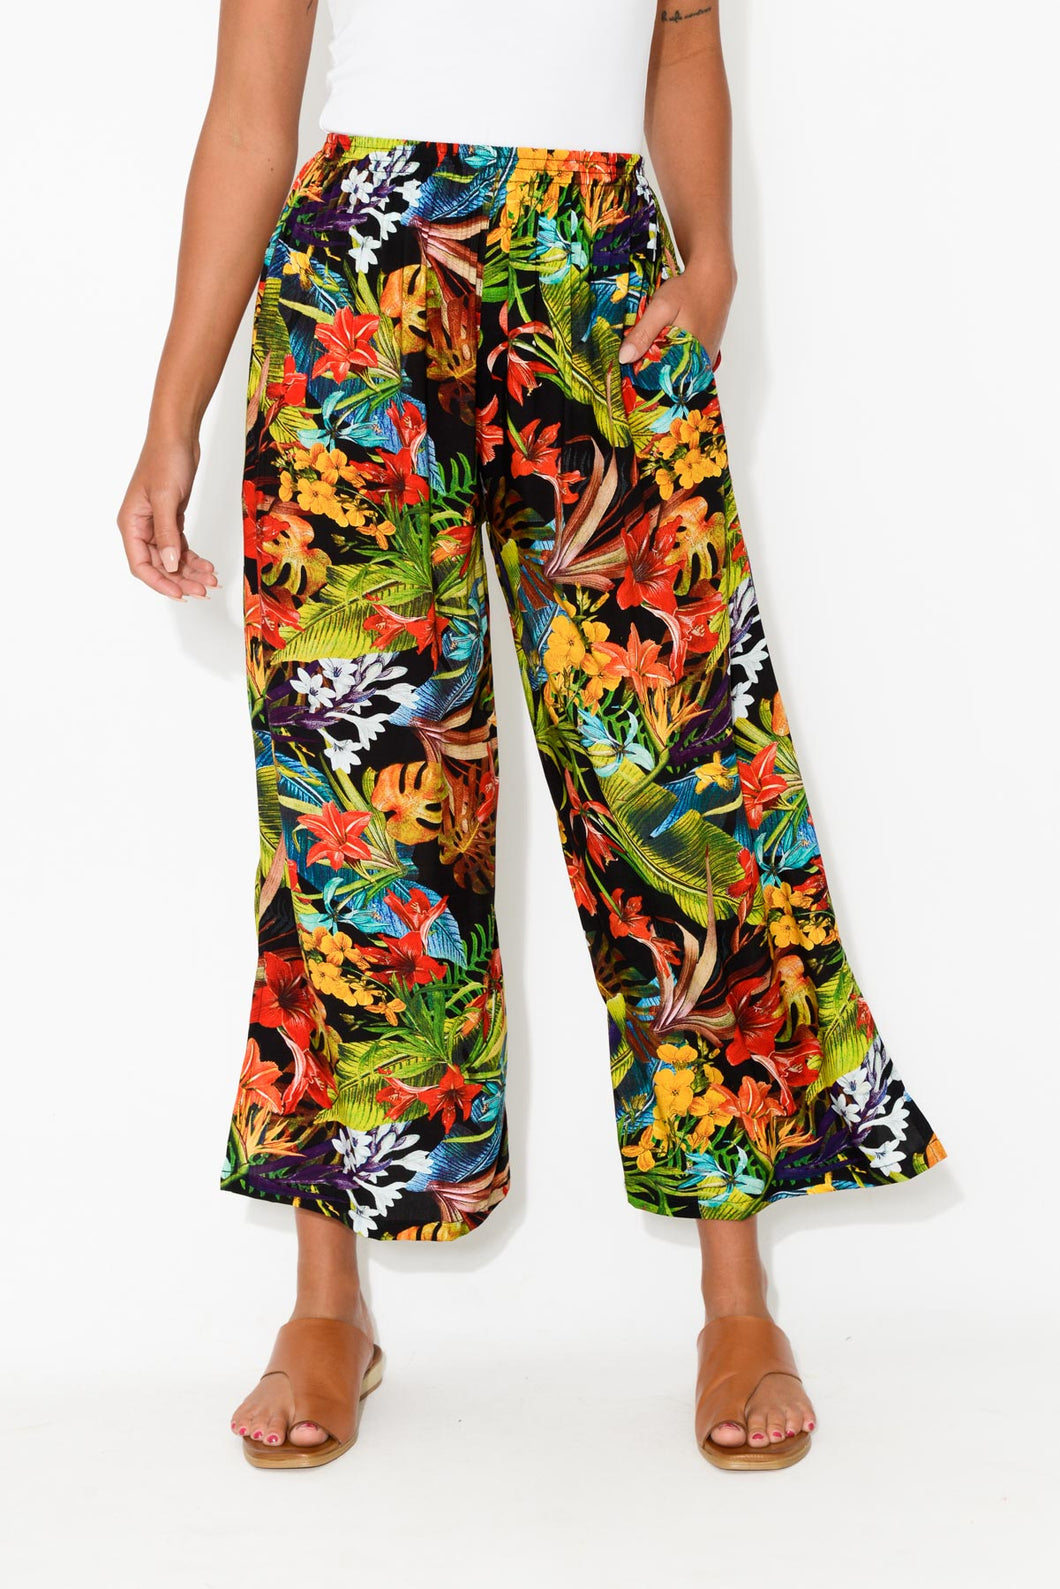 Prue Black Tropical Wide Leg Pant